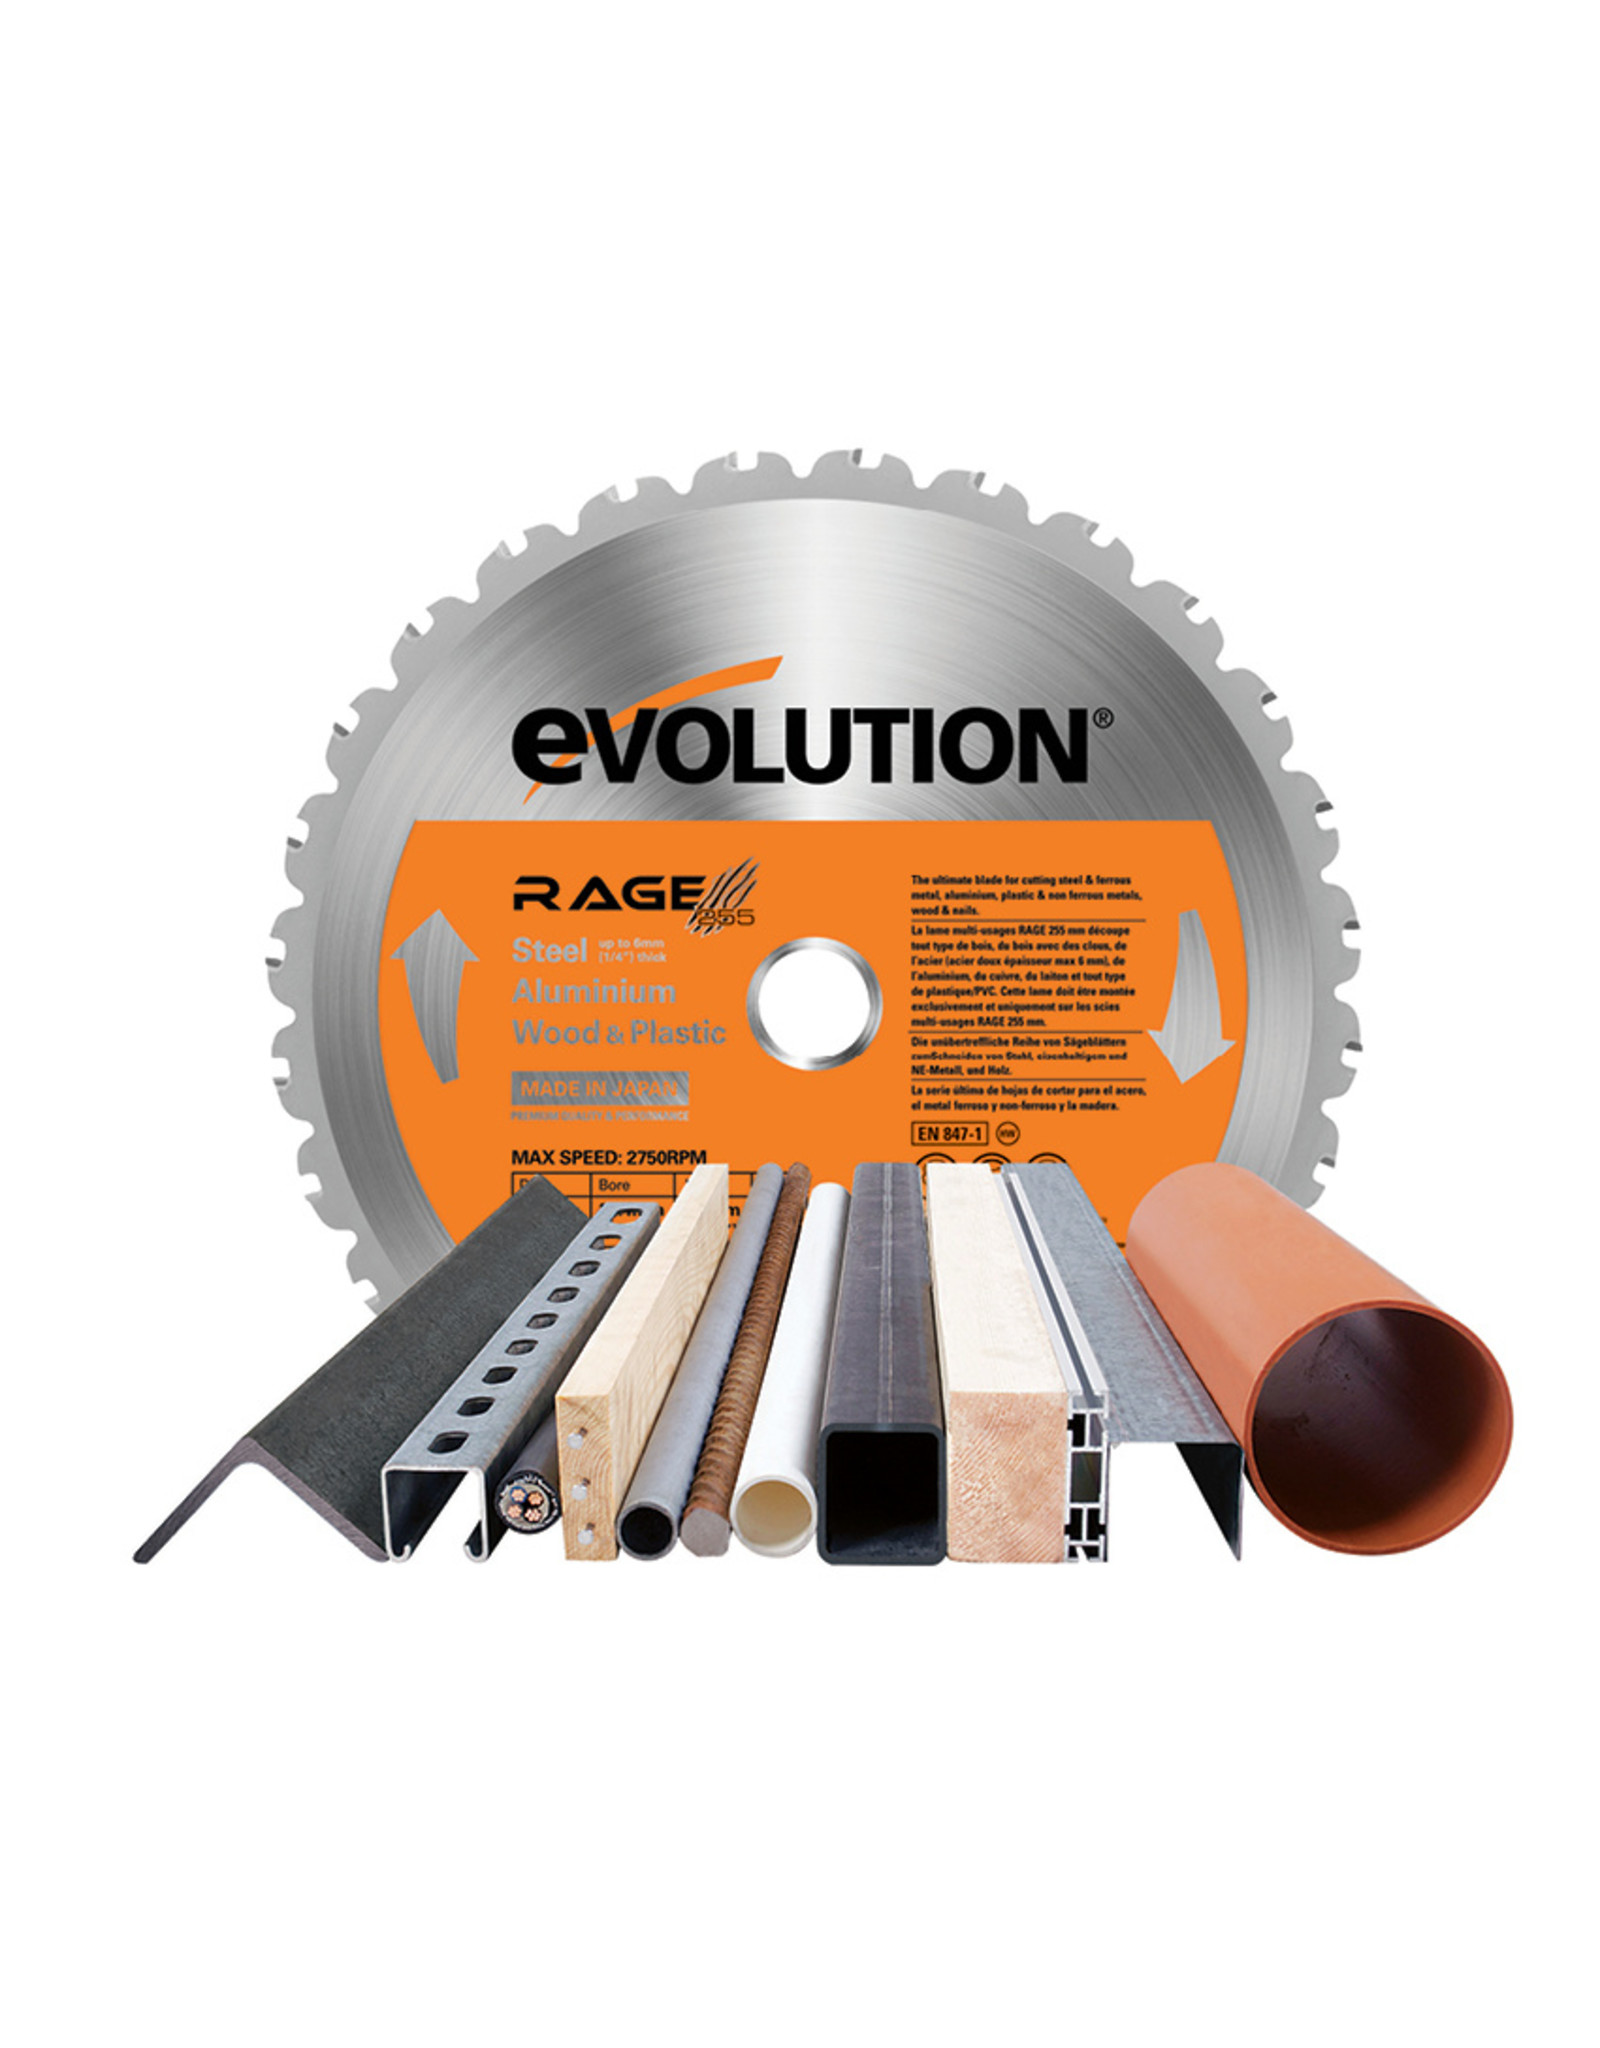 Evolution Power Tools Build Line TAFELZAAG RAGE 5-S + 1 GRATIS ZAAGBLAD